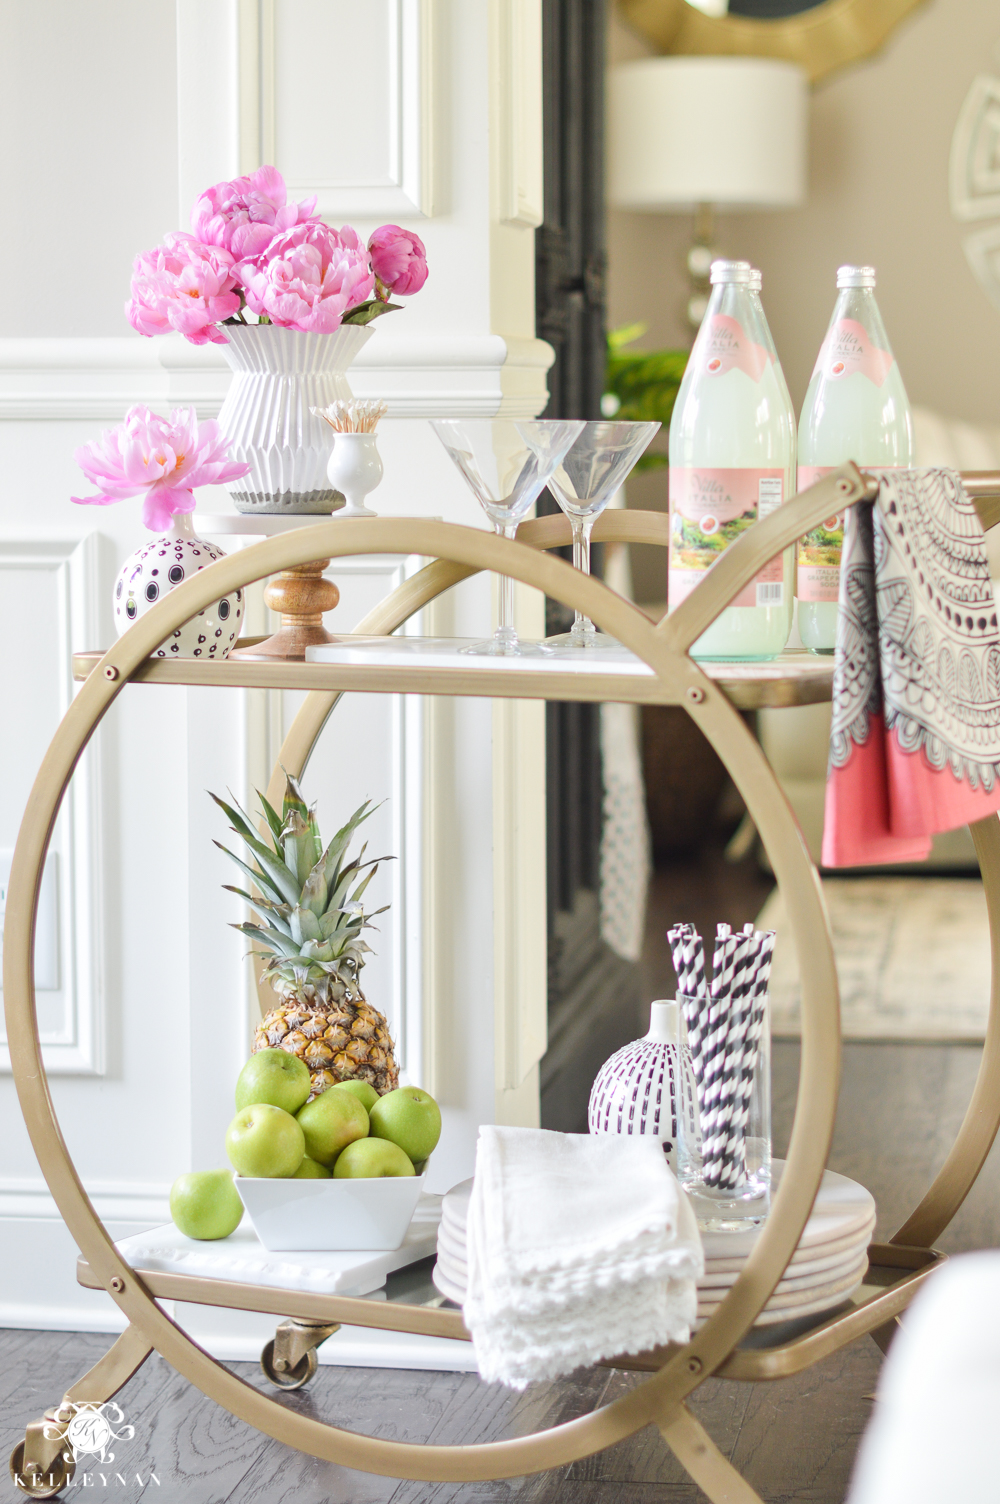 Easy Tropical Bar Cart With Peonies And Pineapple  Bar Cart Accessories